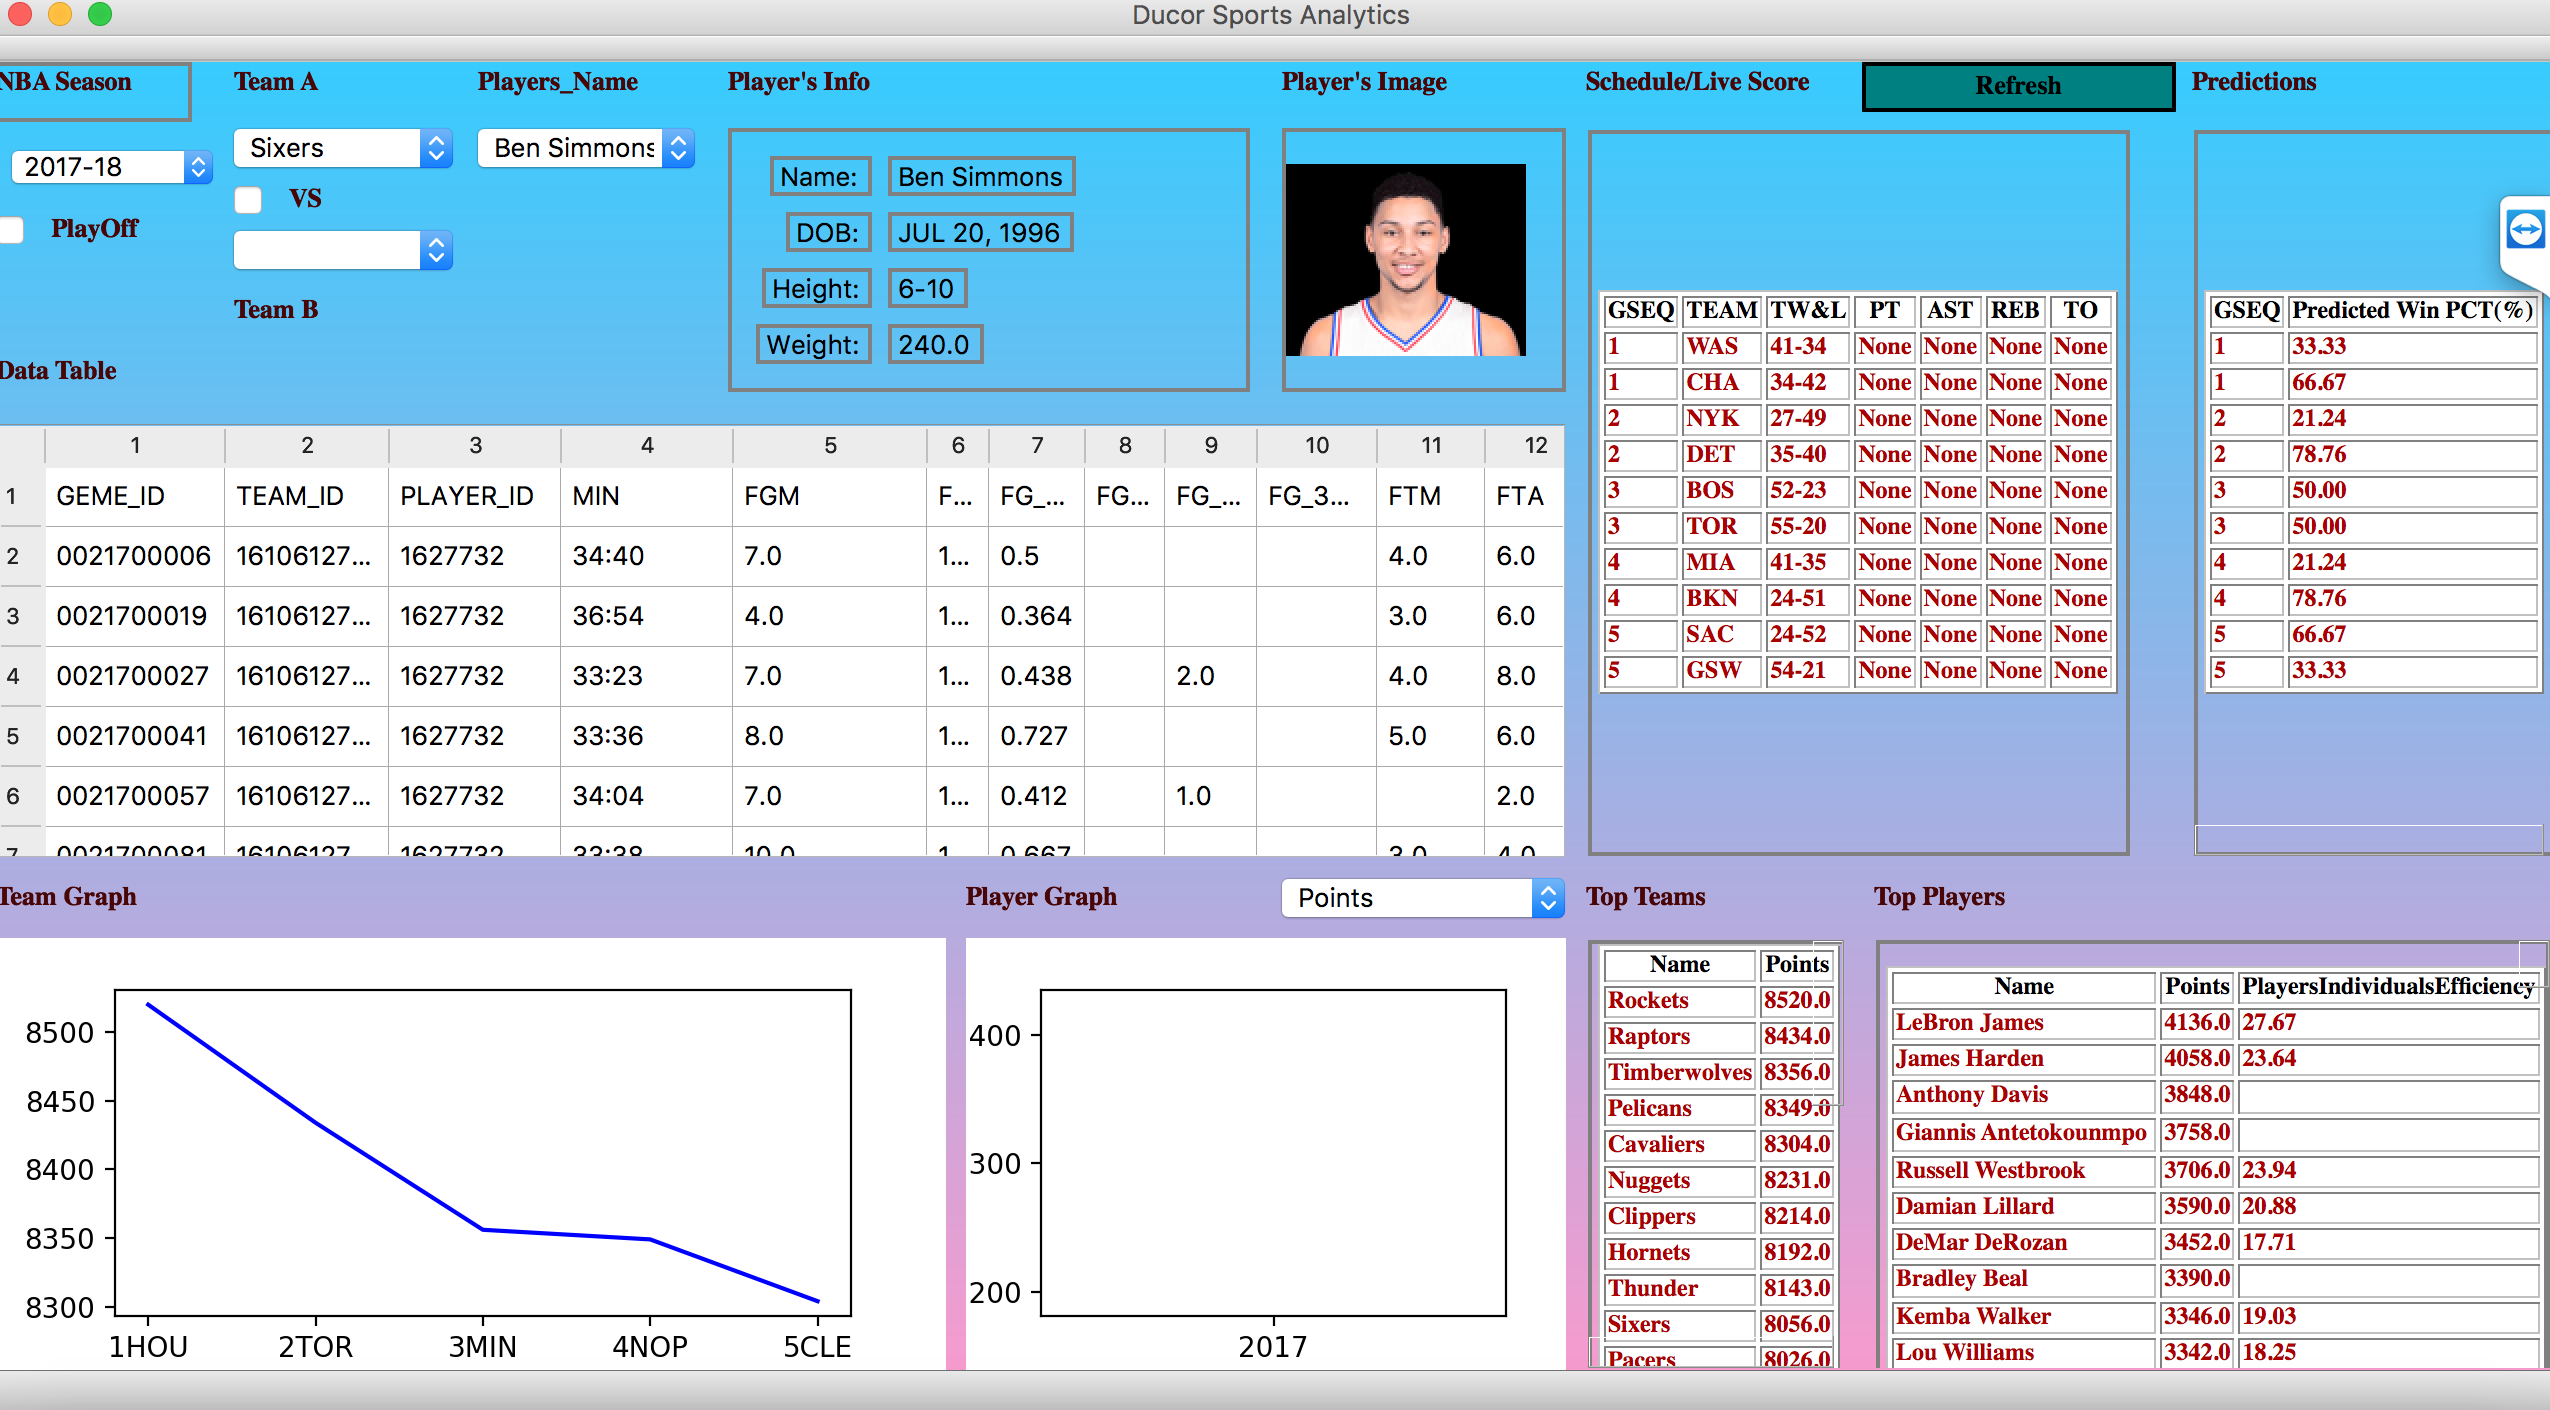 Ducor Sports Analytics – Just in Time for the NBA Playoffs